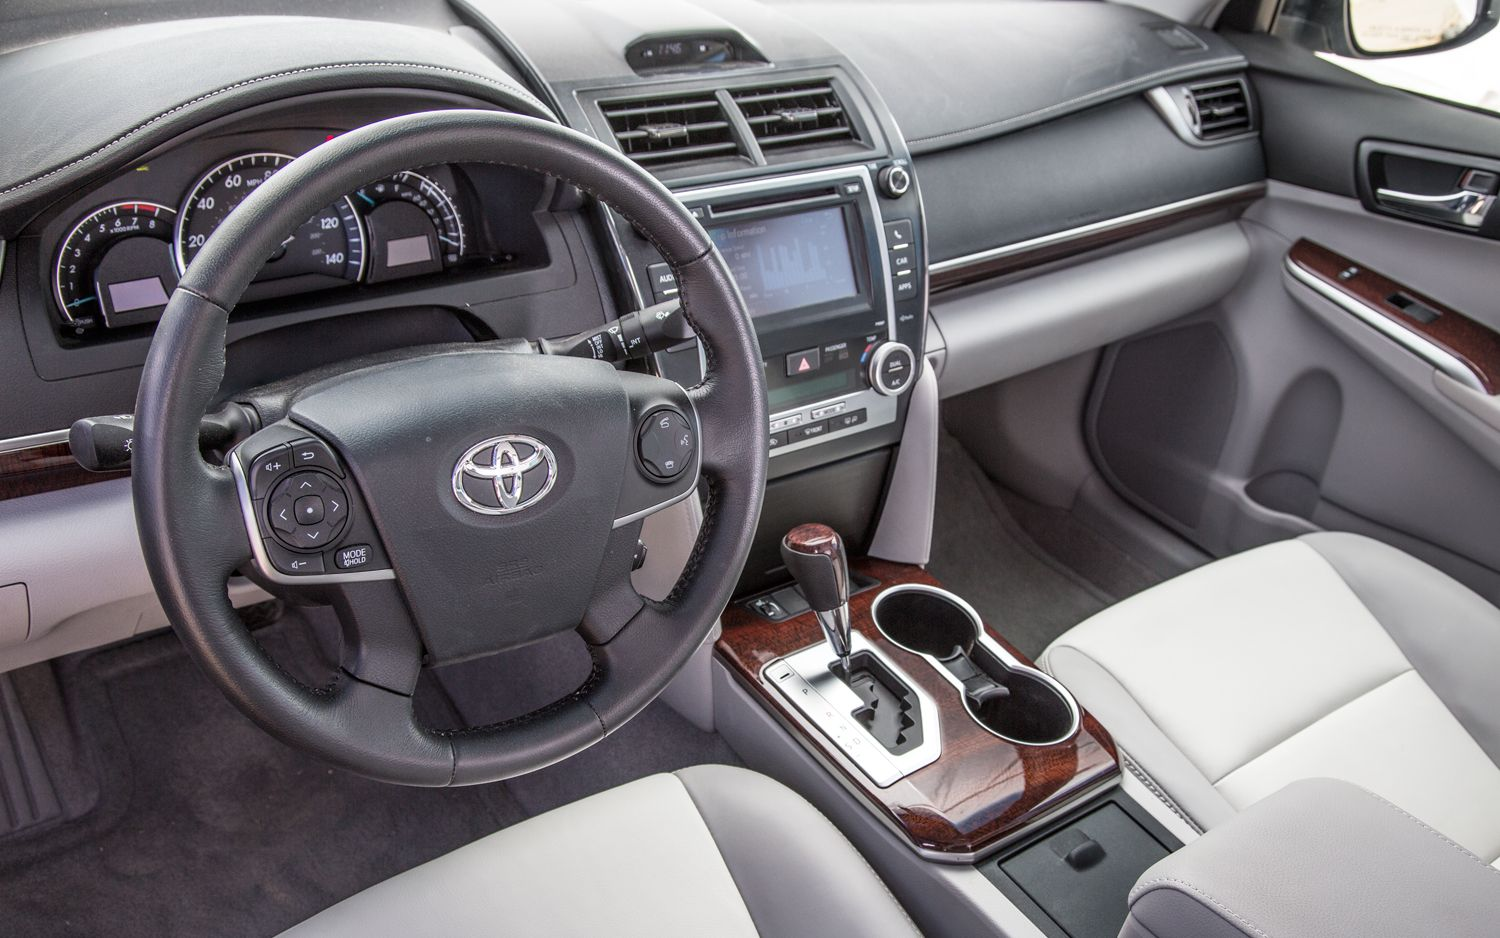 Toyota Camry Xle 2013 2012 Toyota Camry Xle Interior Photo 26 Cars Pinterest Toyota